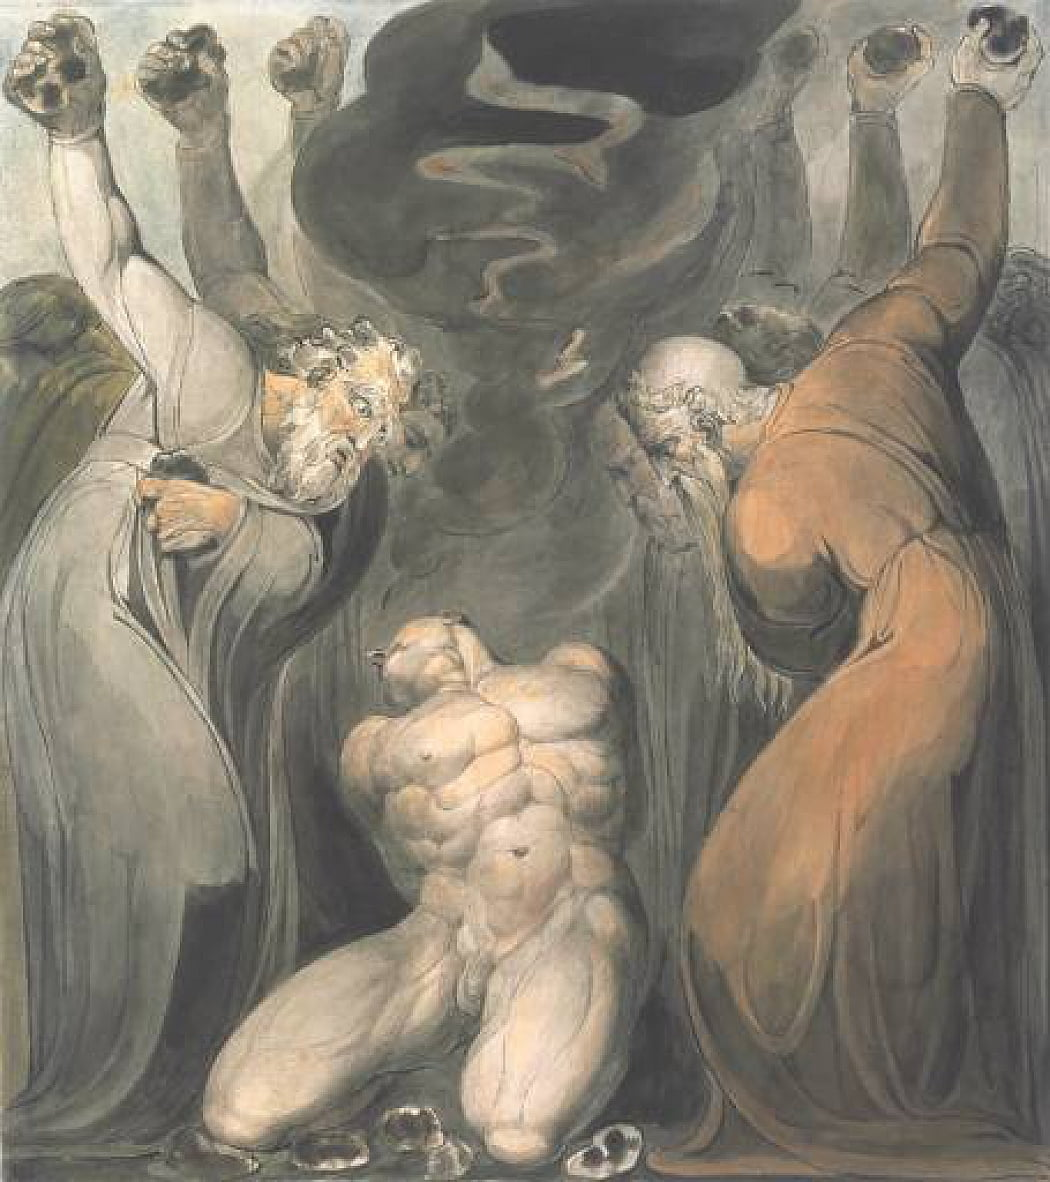 The Blasphemer by William Blake